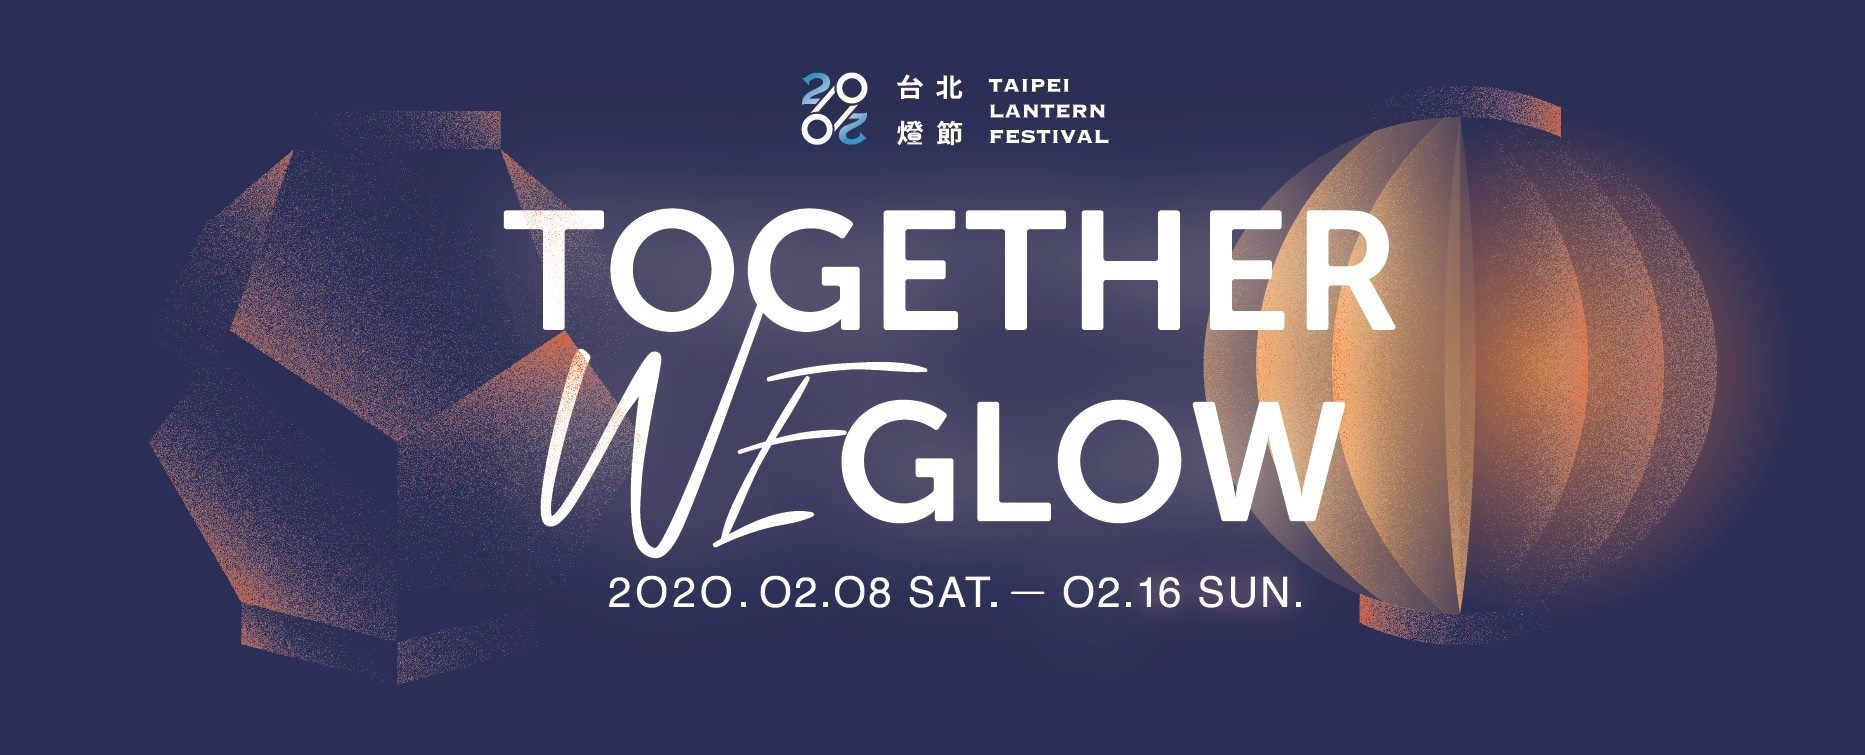 2020 Taipei International Lantern Festival